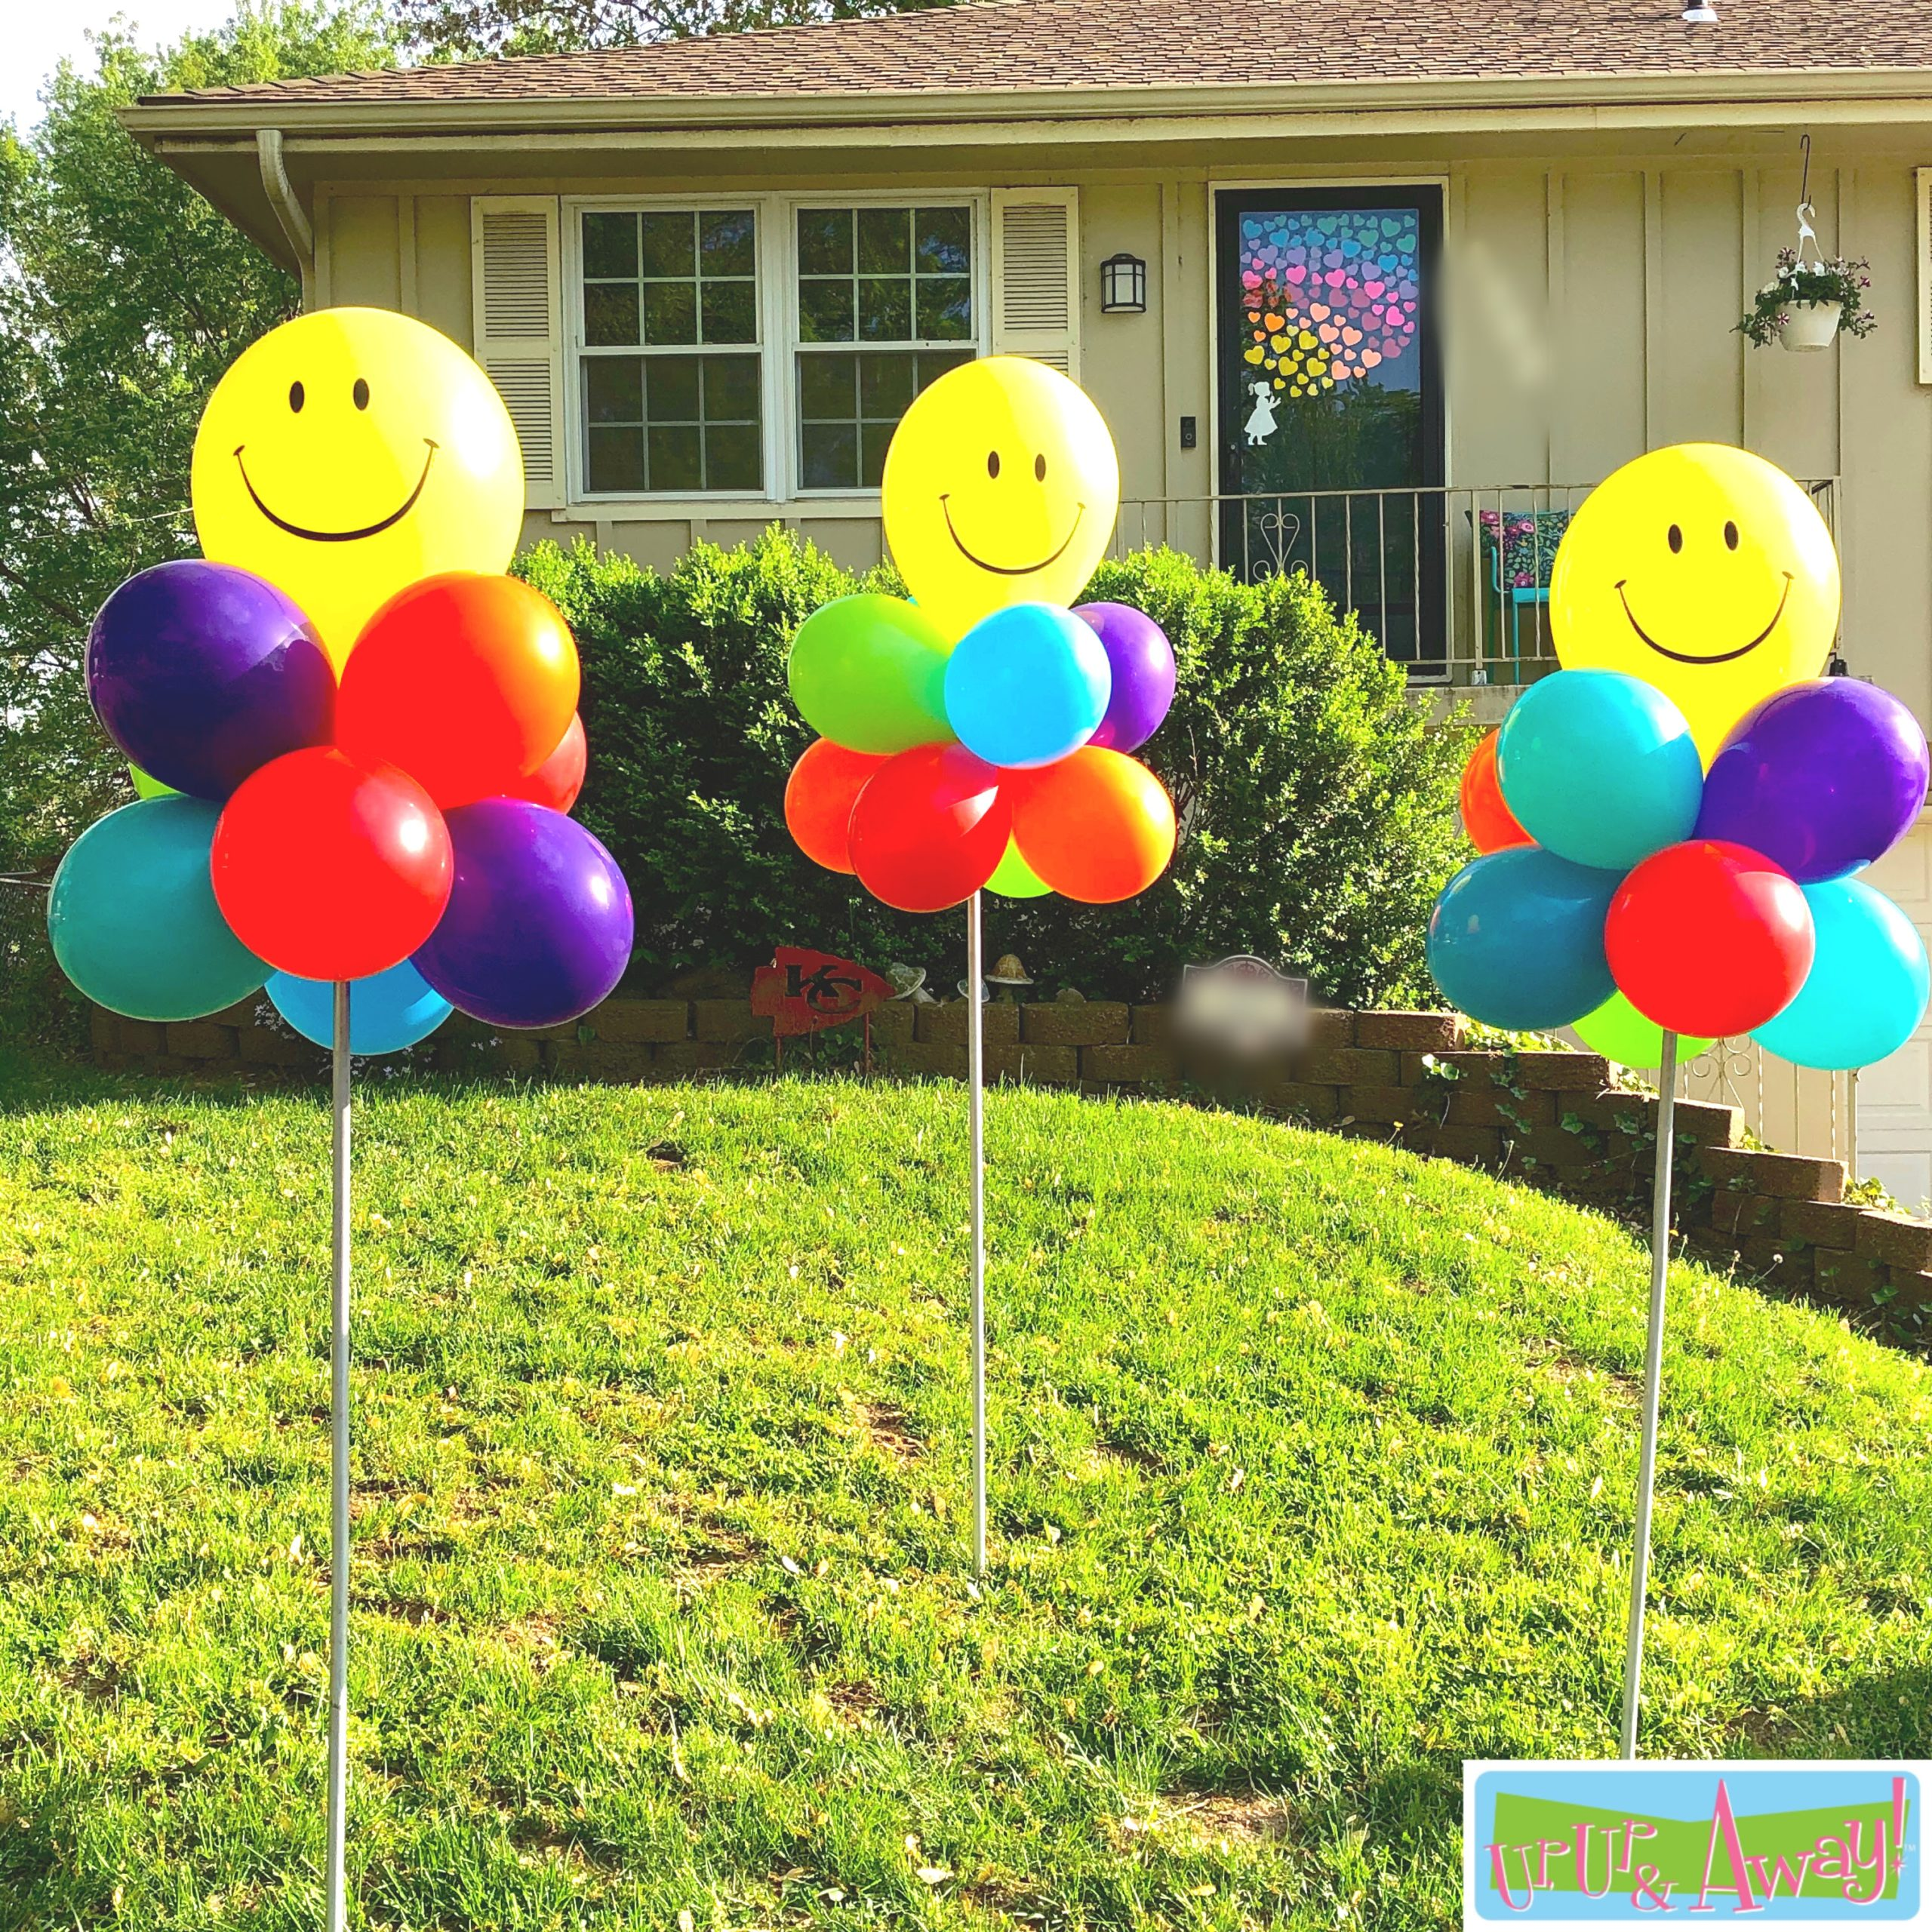 Send a Smile | Up Up & Away! Balloons